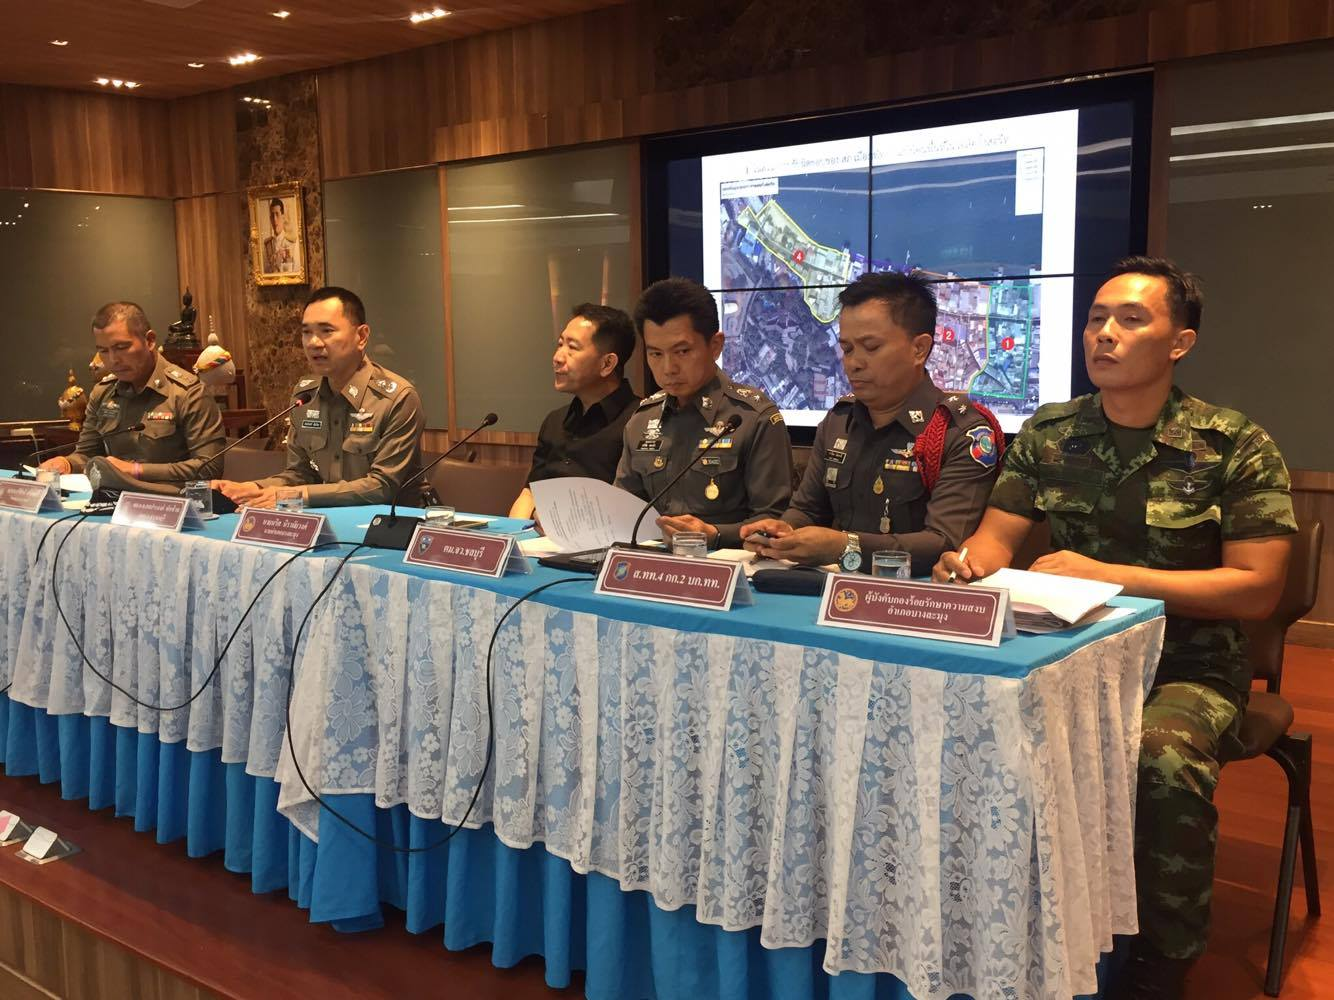 """""""Happy Zone"""" is the answer to resort's woes says top cop at Pattaya crisis meeting on crime and tourism 